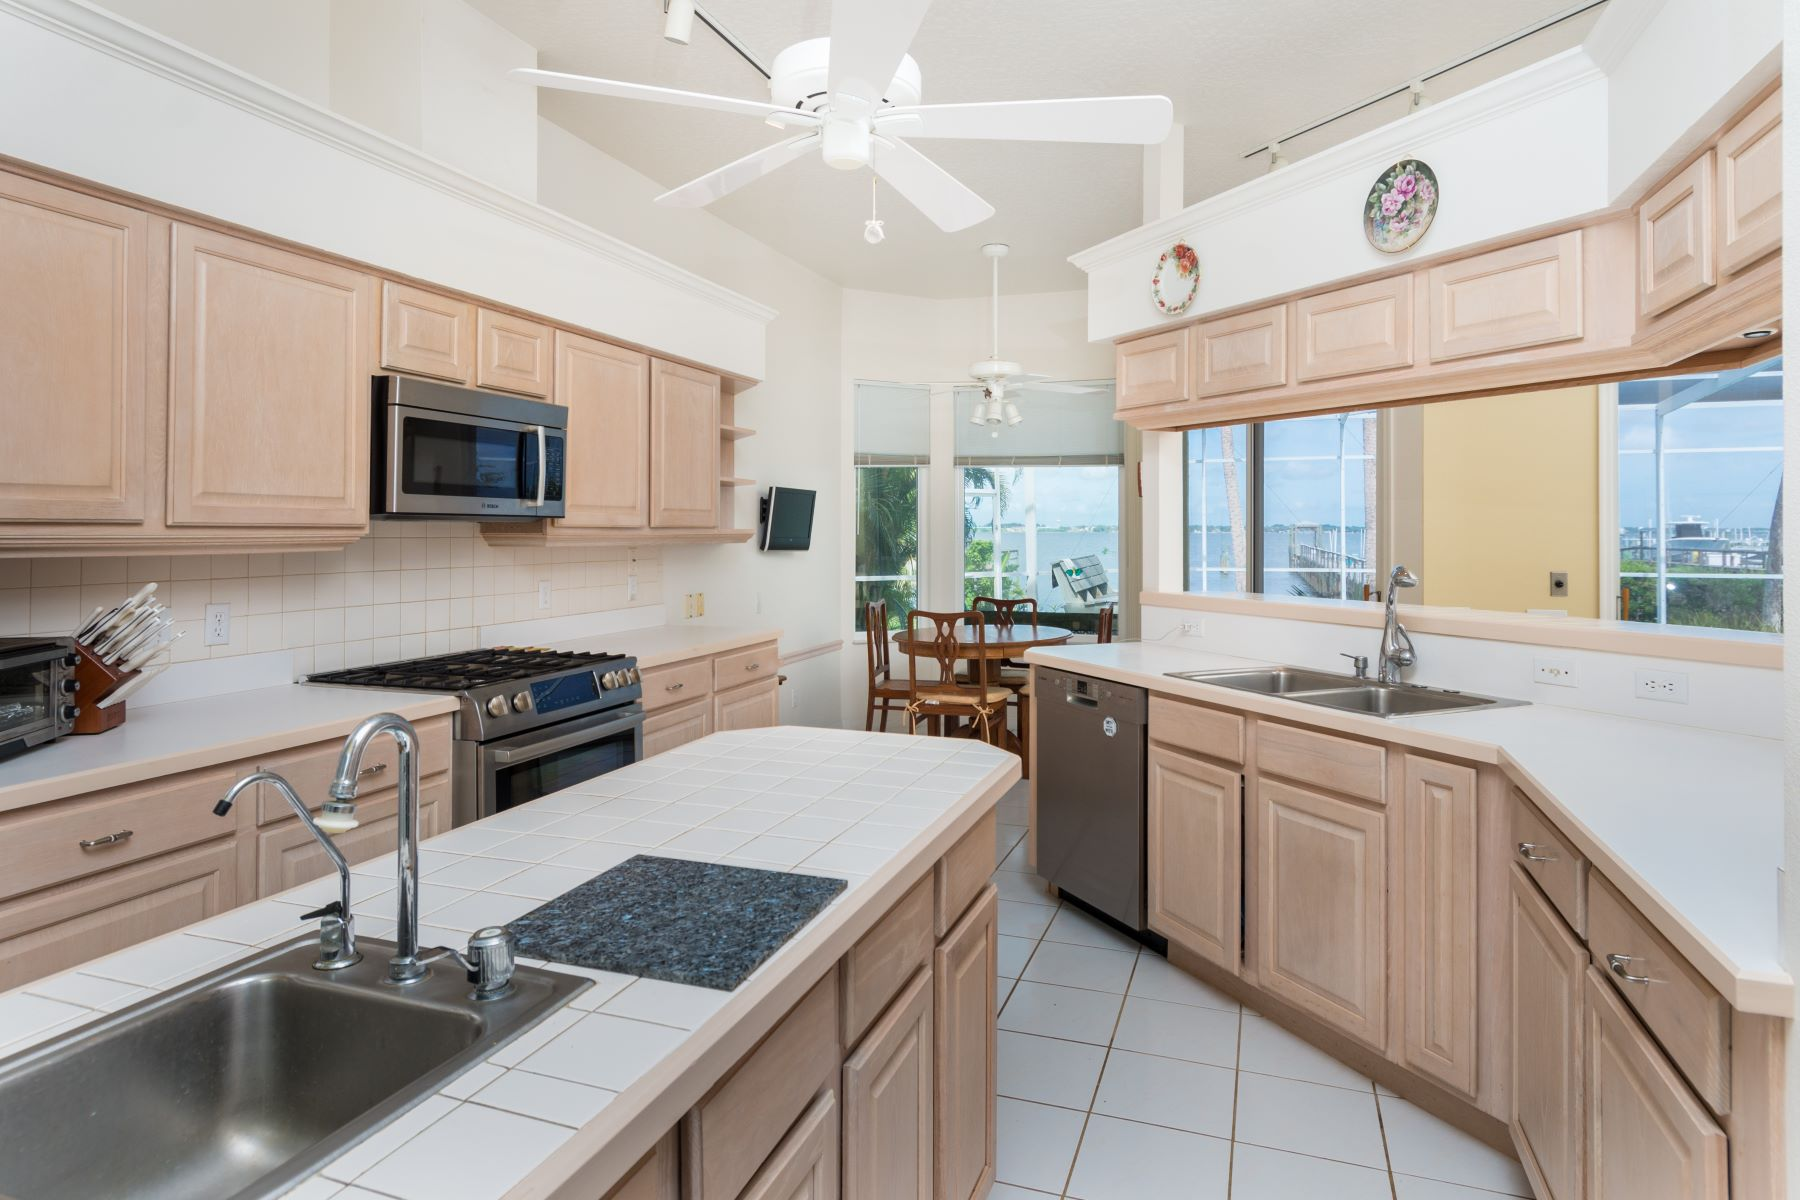 Additional photo for property listing at Spacious Direct Riverfront Home 247 Seaview Street NULL Melbourne Beach, Florida 32951 United States